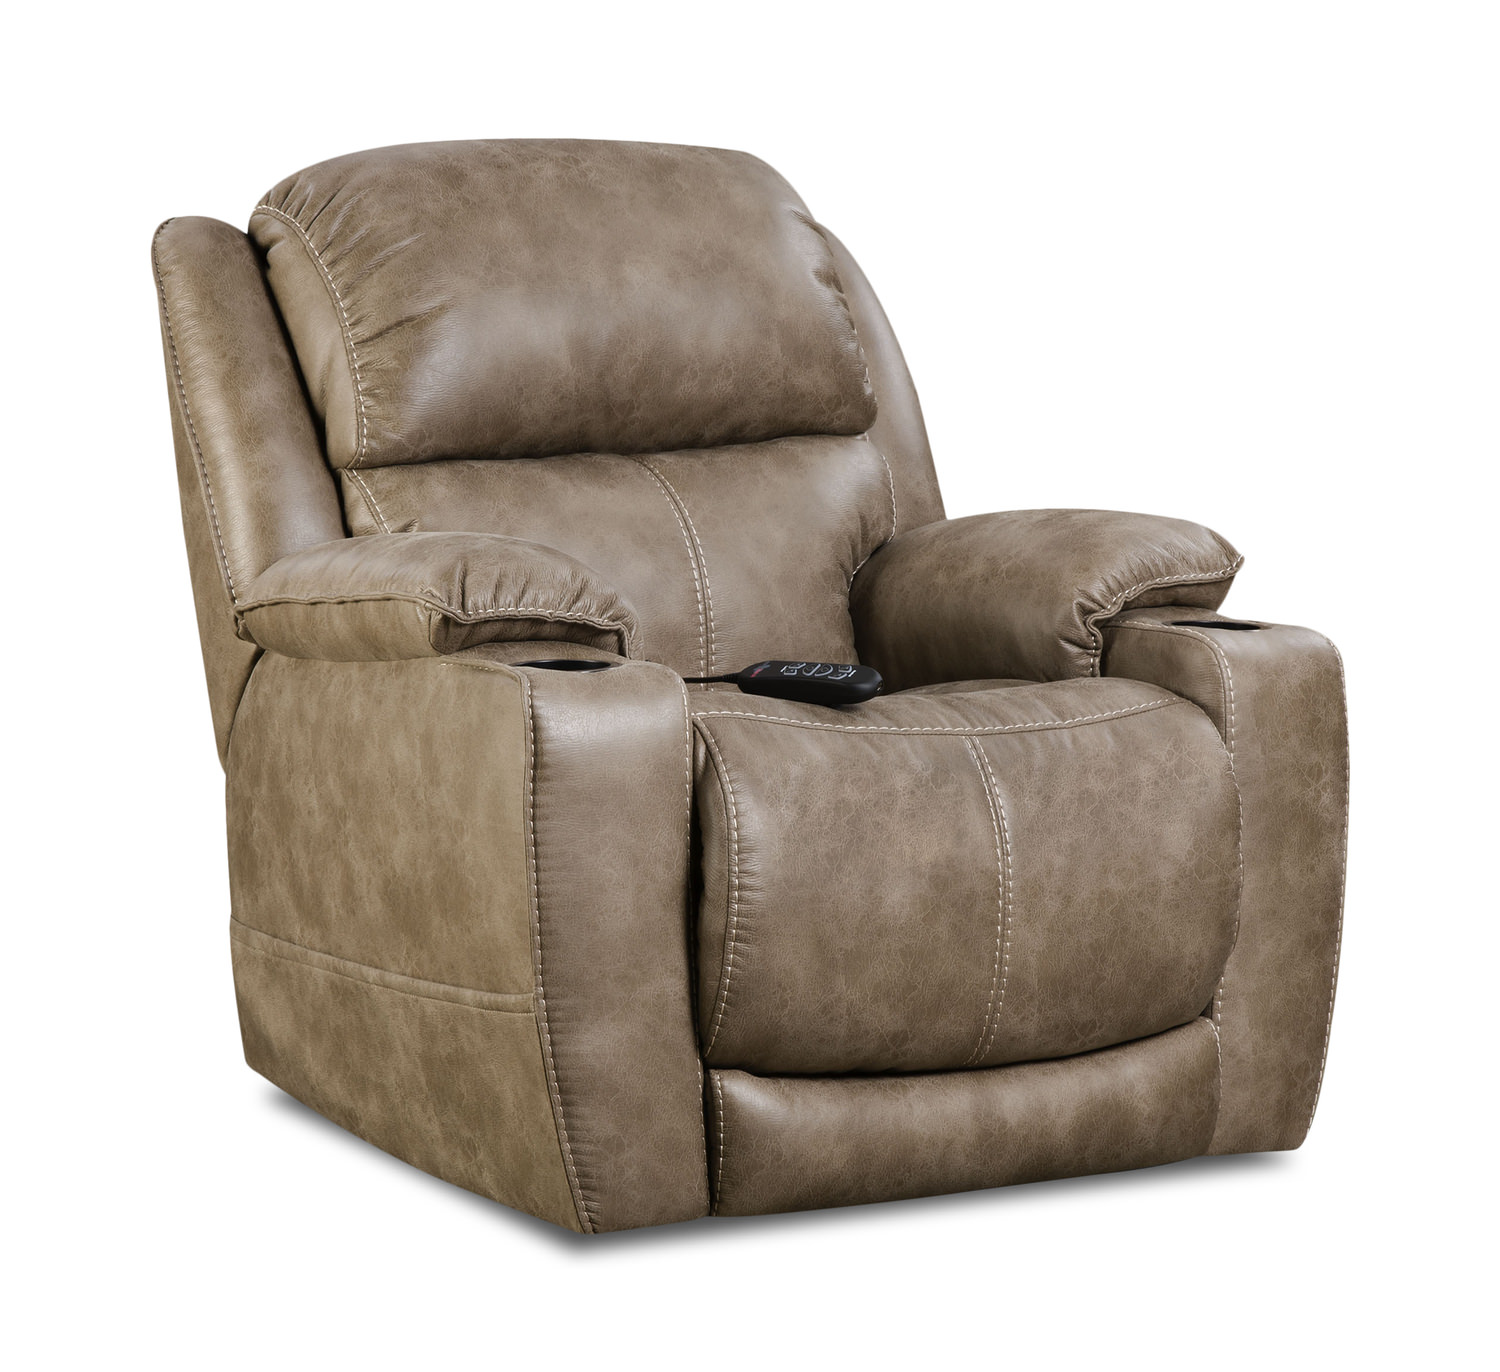 Stupendous Starship Power Home Theater Recliner Machost Co Dining Chair Design Ideas Machostcouk